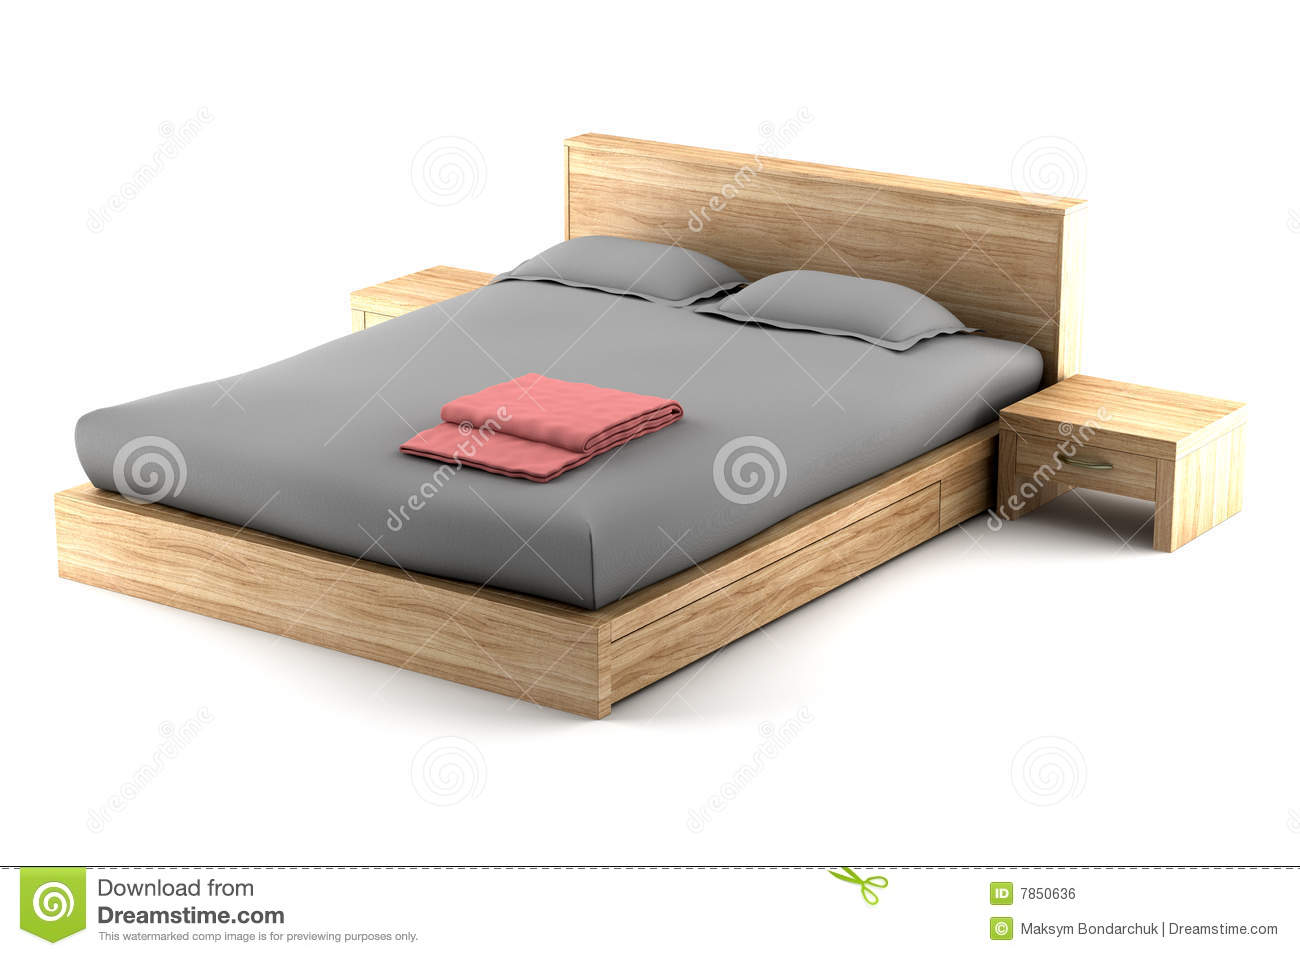 Very Impressive portraiture of Brown Wooden Bed Isolated On White Royalty Free Stock Image Image  with #83A229 color and 1300x956 pixels